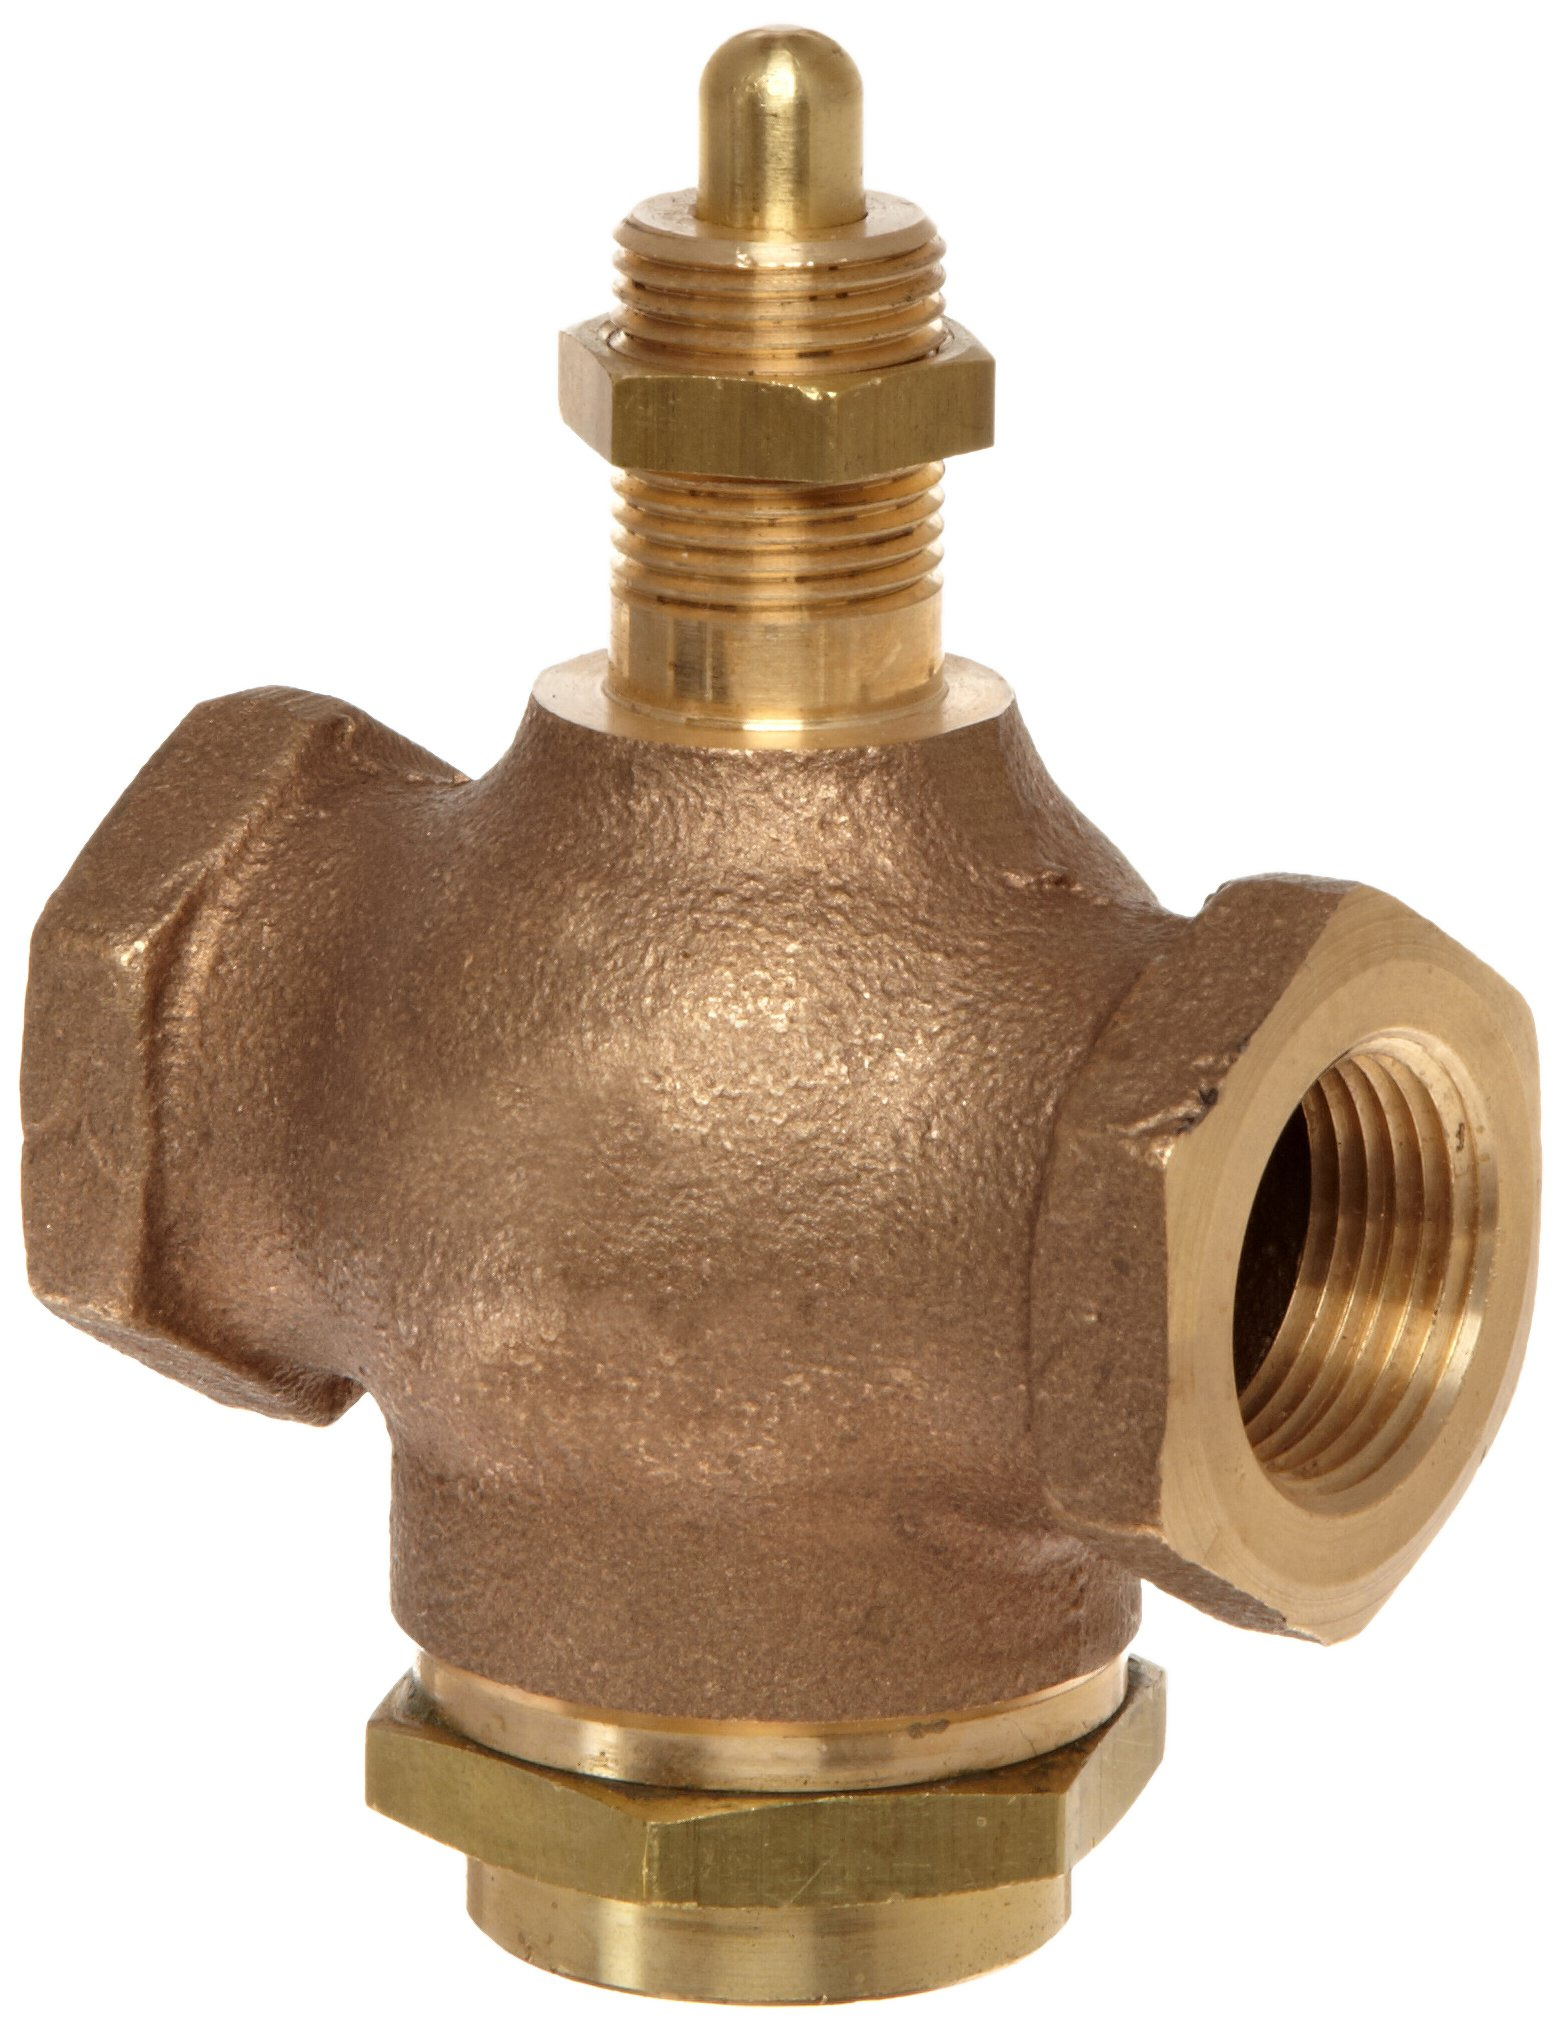 Kingston 305A Series Brass Quick Opening Flow Control Valve, No Handle, 3/4'' NPT Female